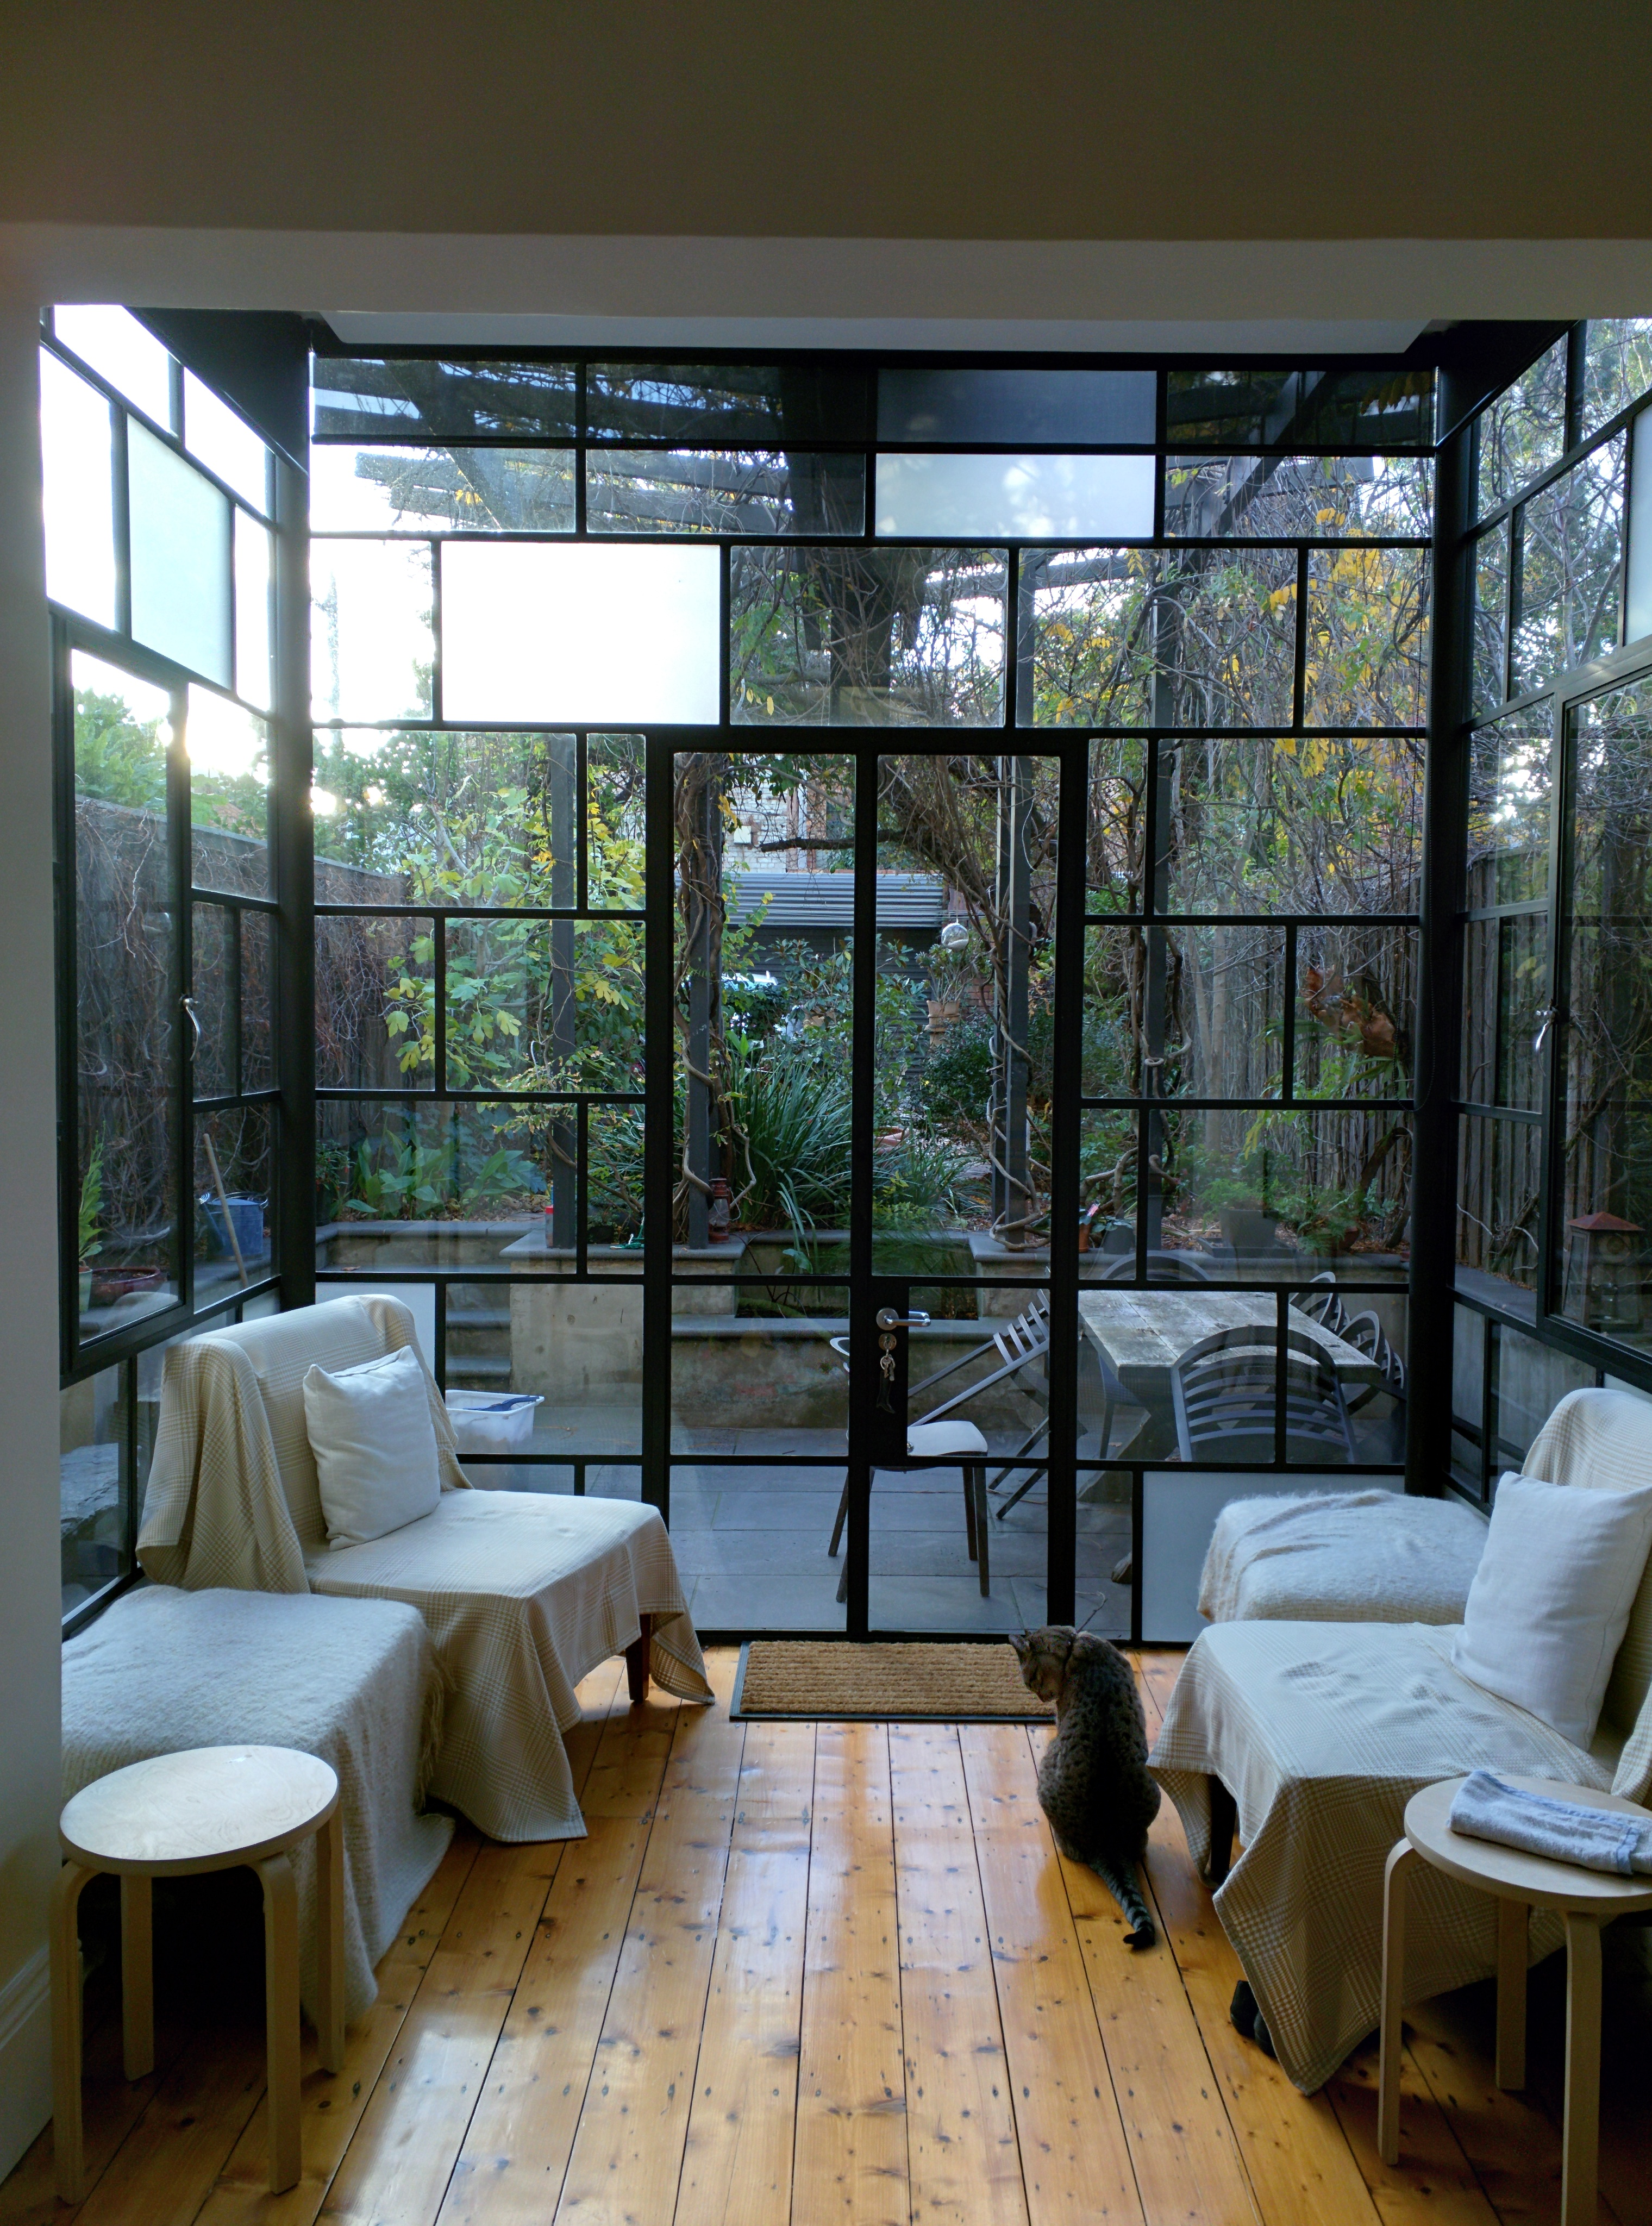 File conservatory home interior jpg wikimedia commons for Conservatory interior designs